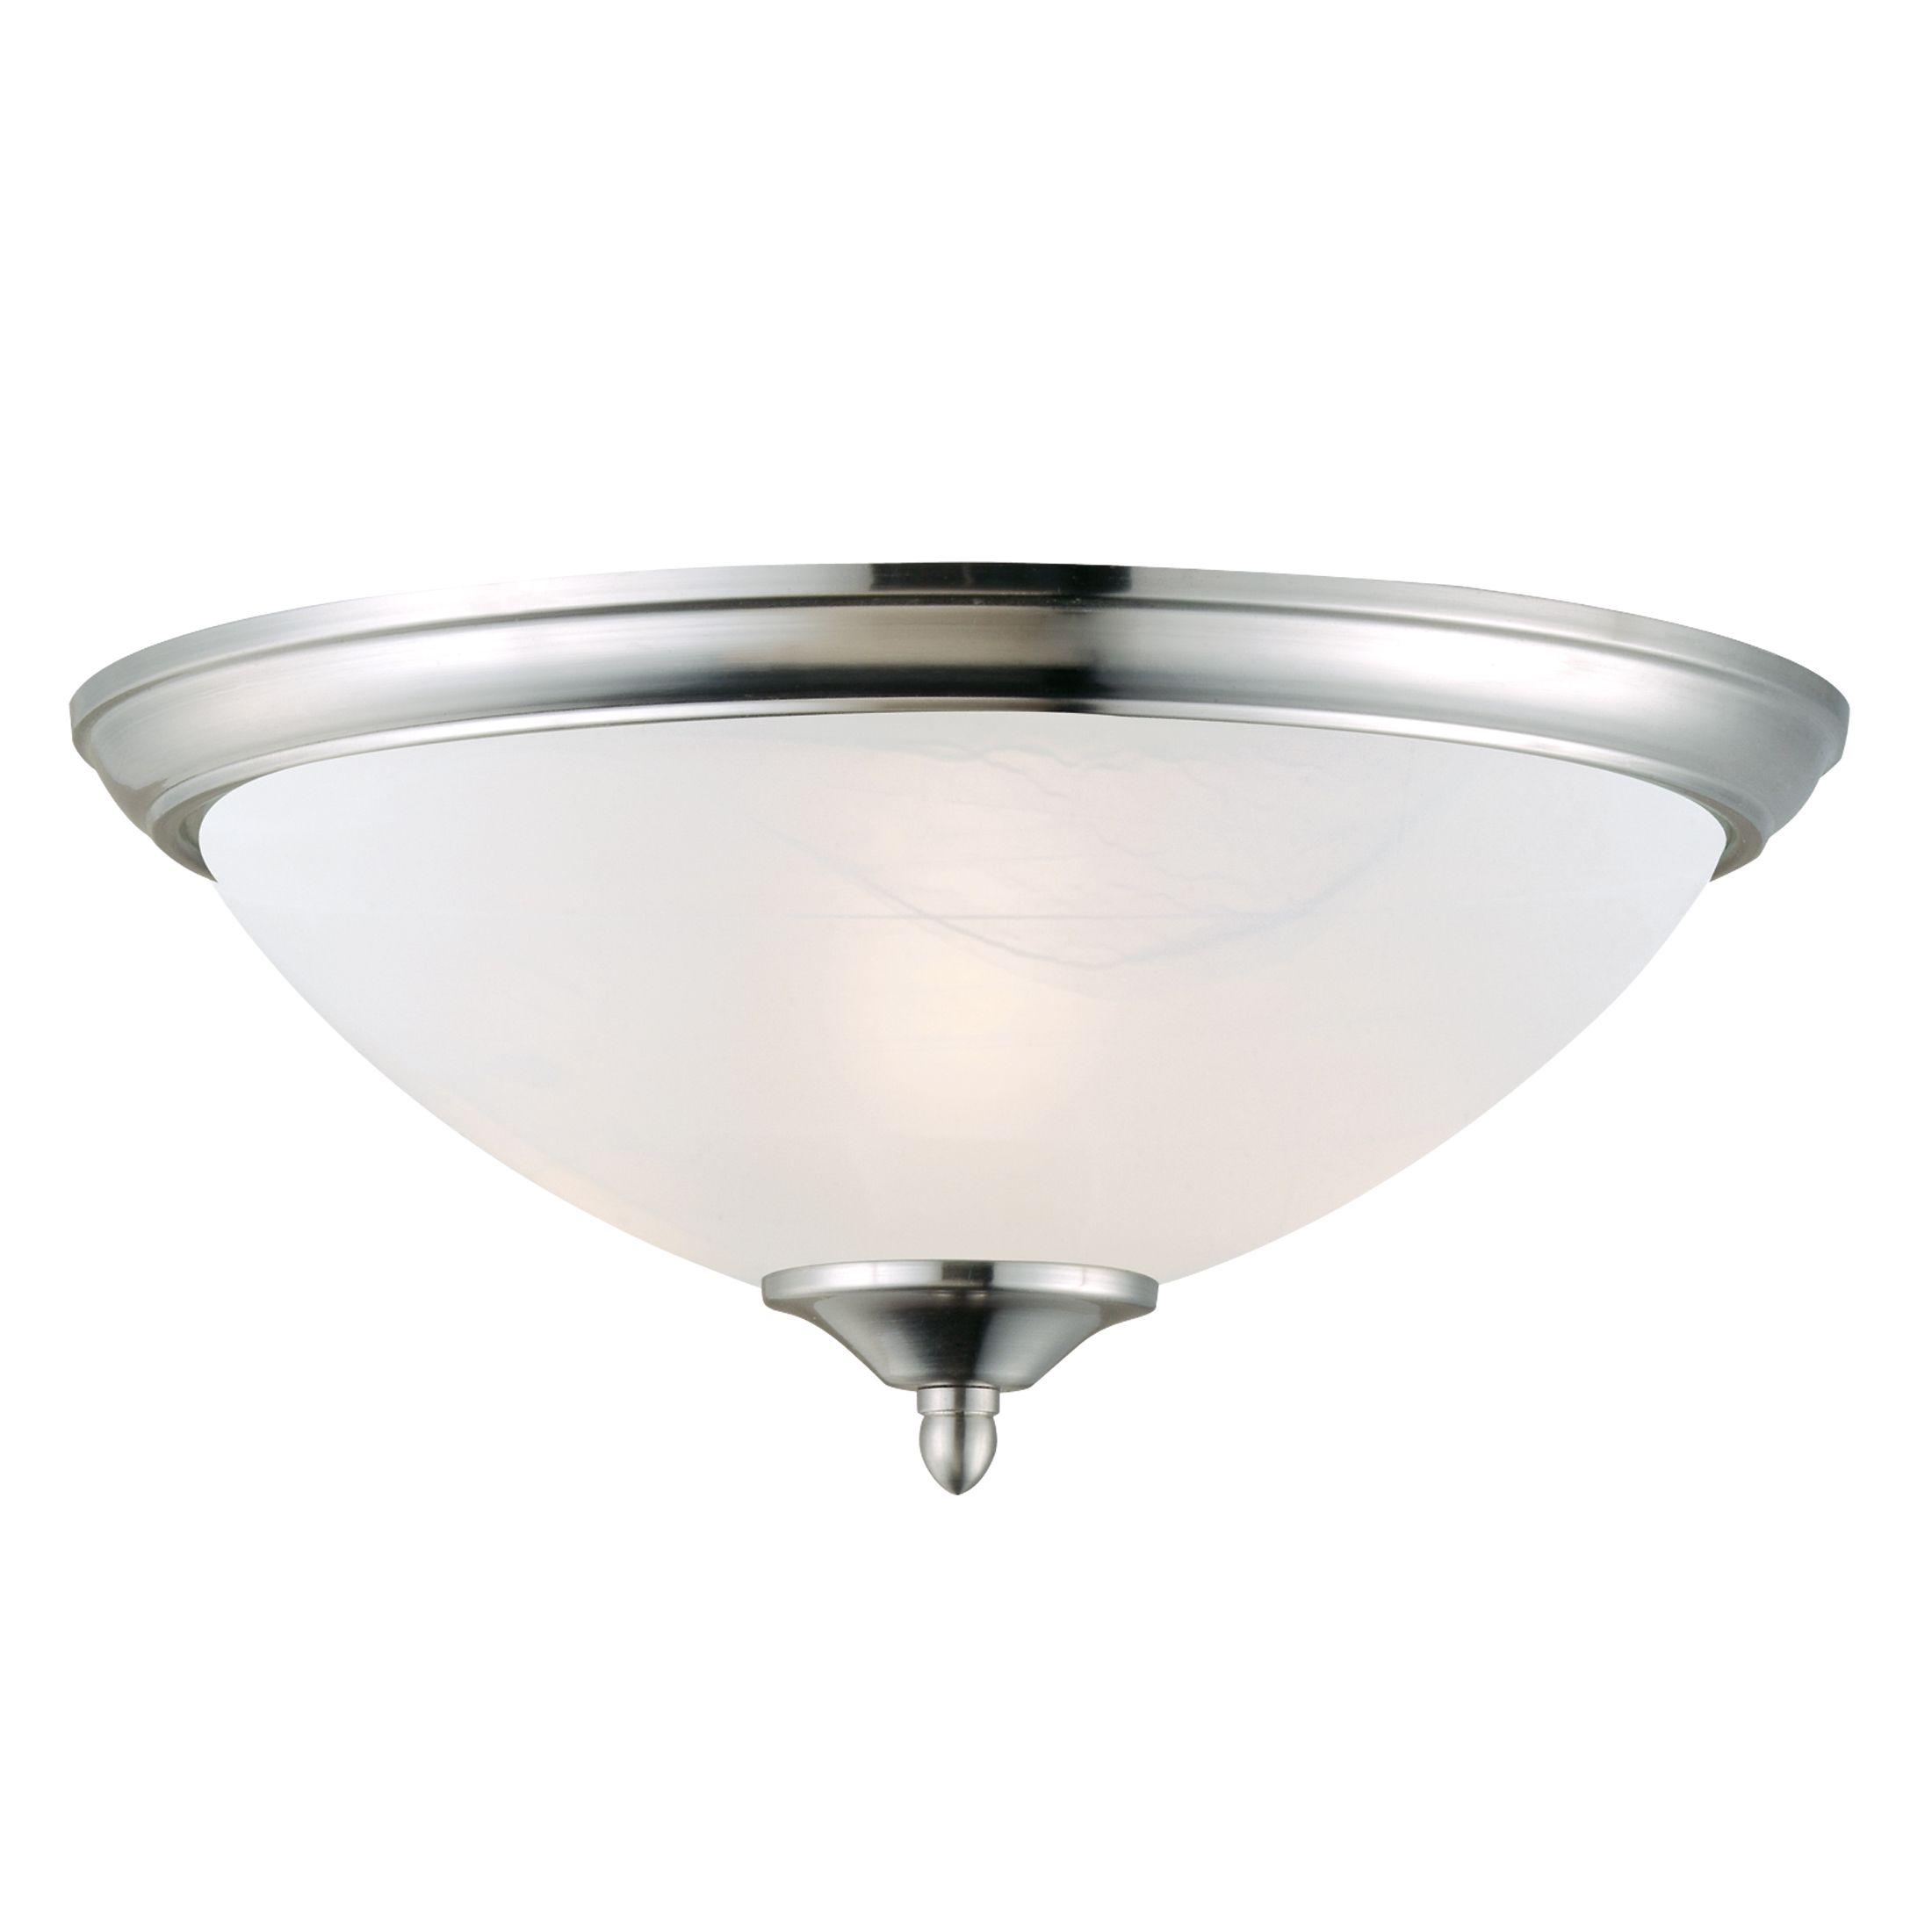 Trevie 2-Light Ceiling Light, Satin Nickel #512475